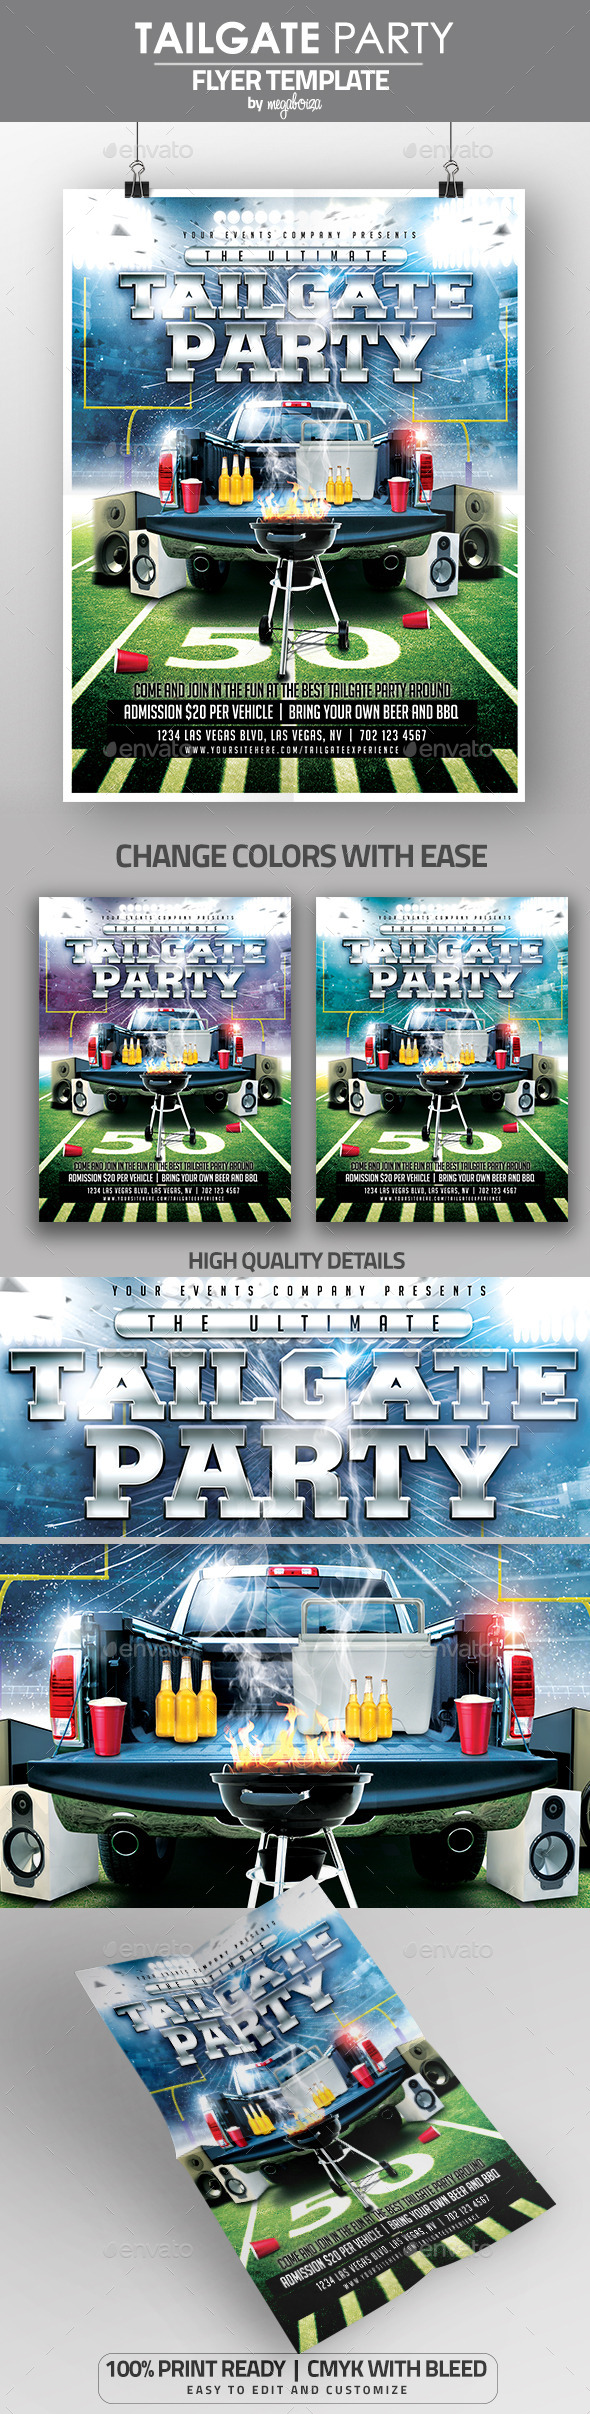 Ultimate Tailgate Party Flyer / Poster Template - Clubs & Parties Events